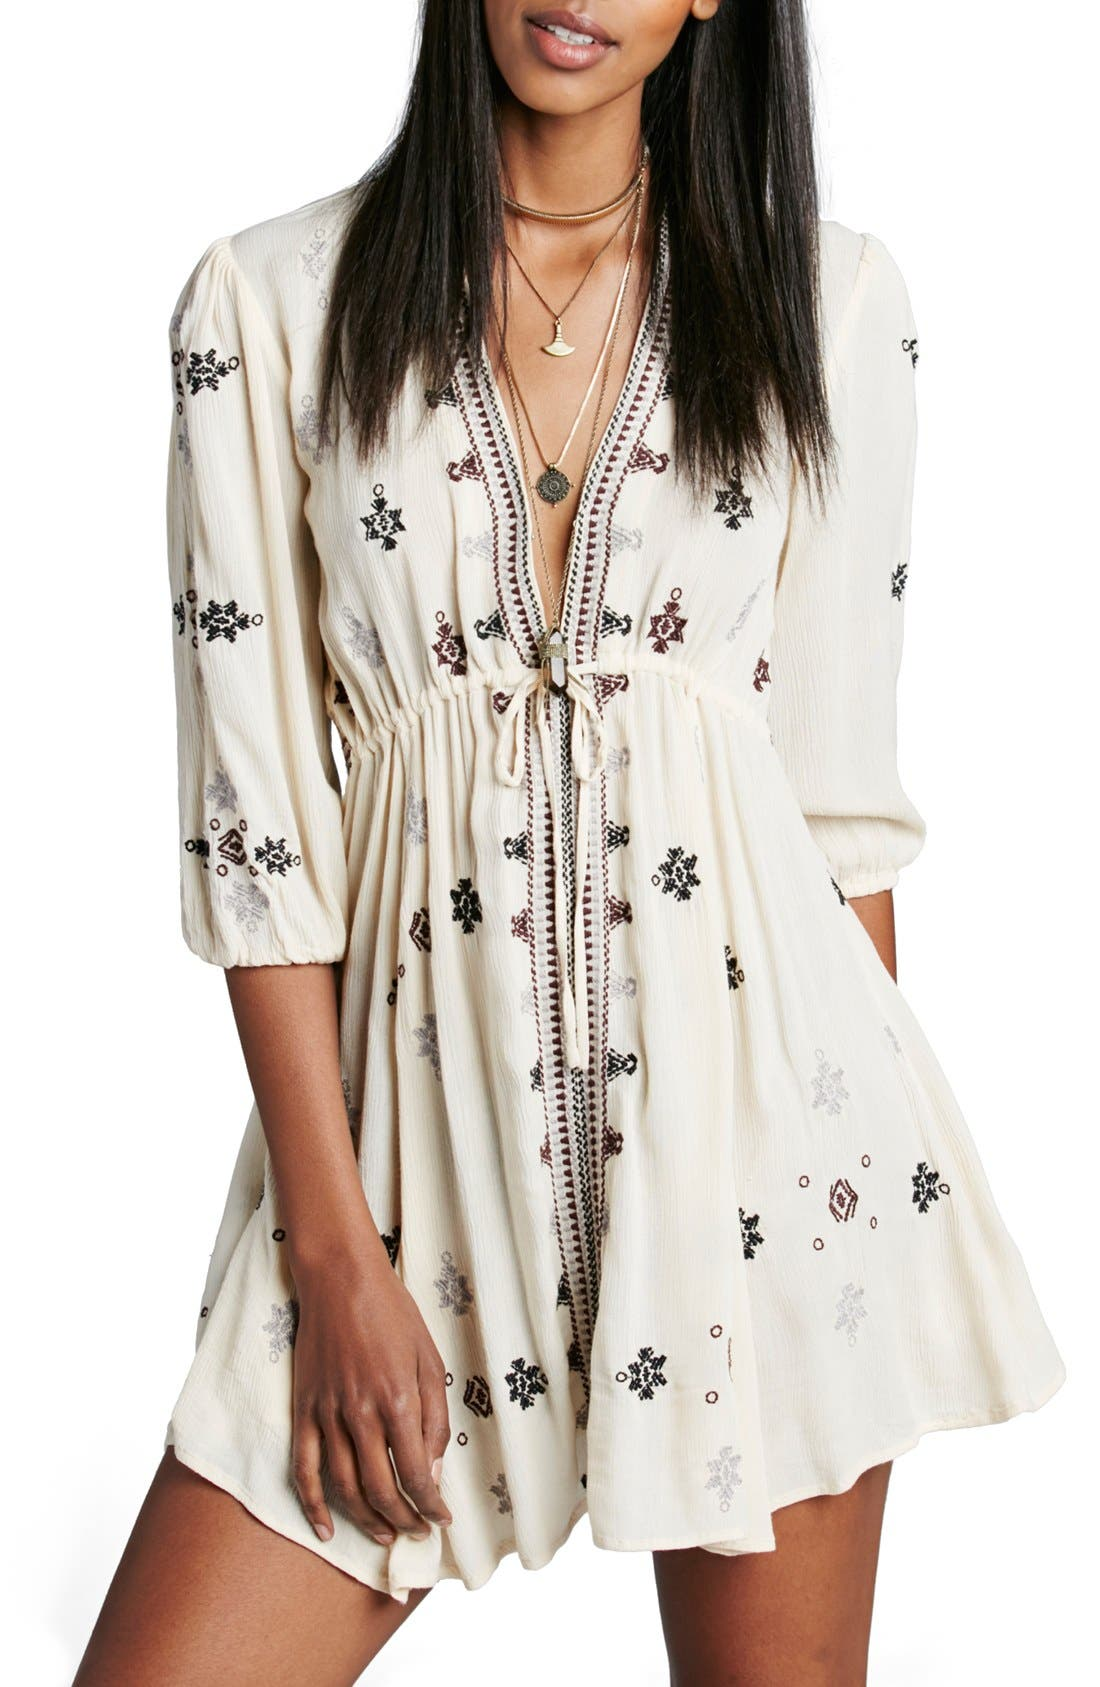 Alternate Image 1 Selected - Free People 'Star Gazer' Embroidered Tunic Dress